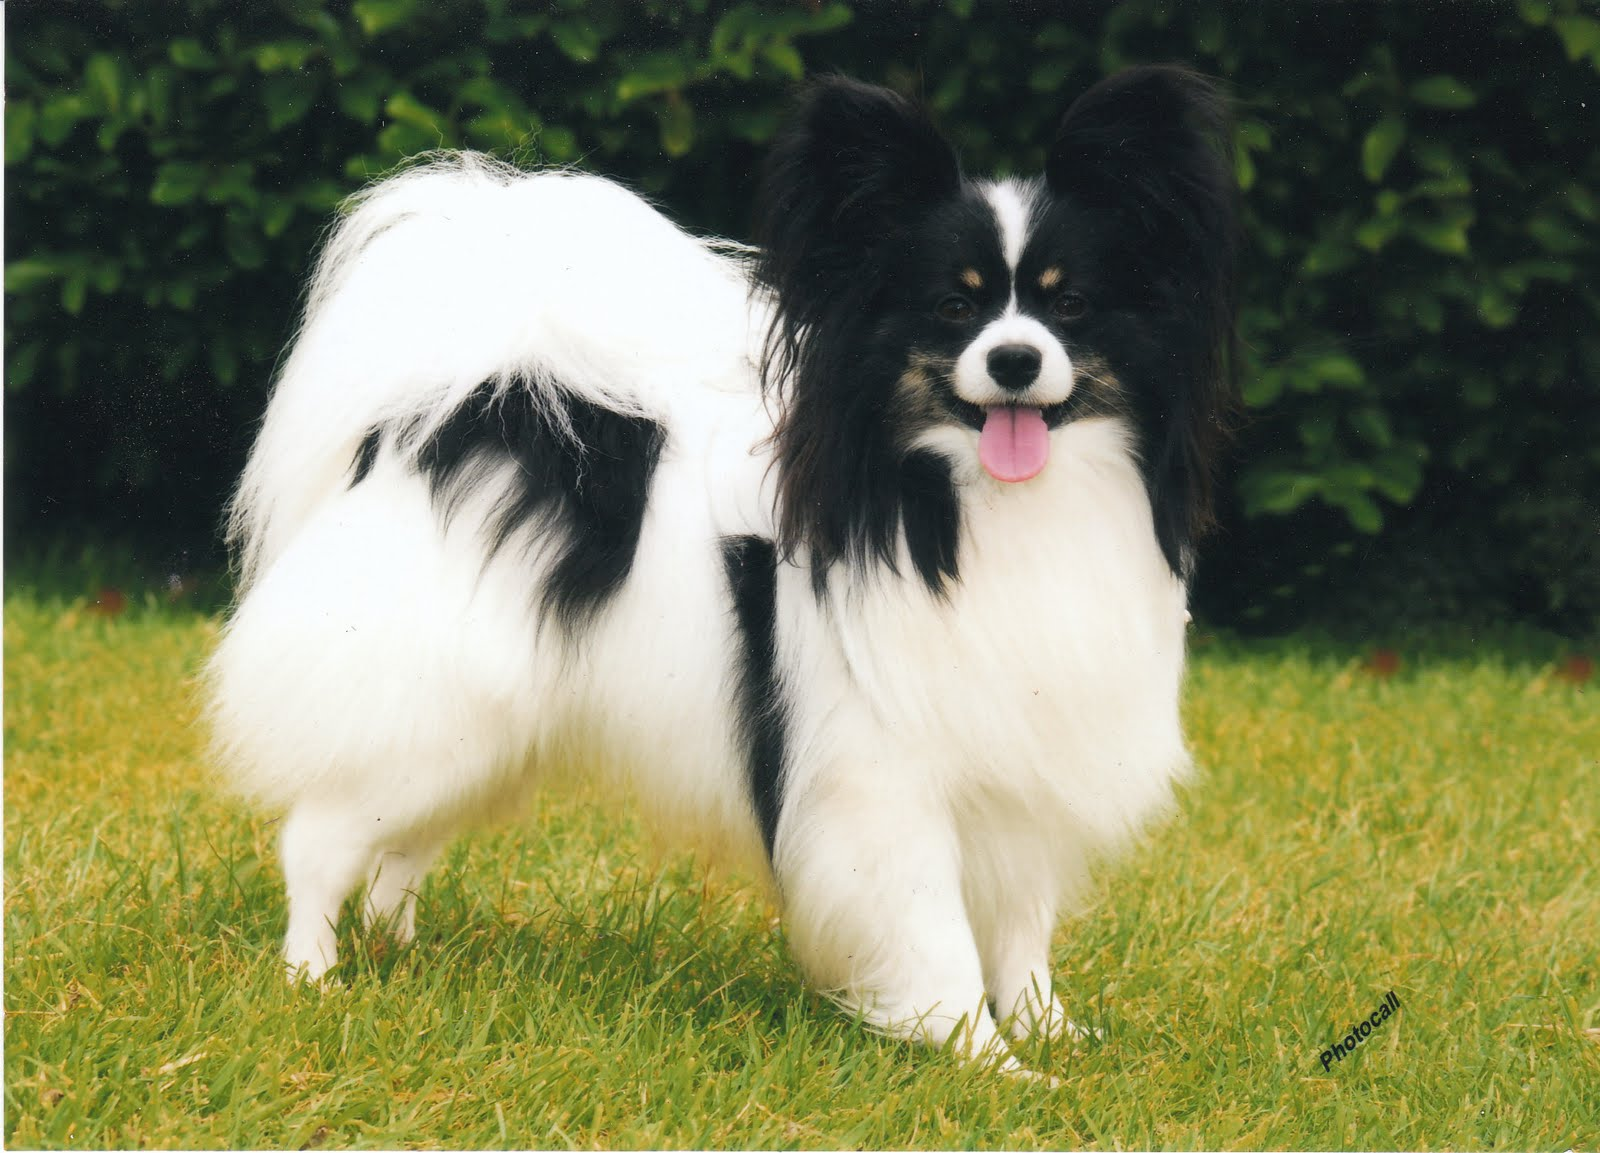 THE PAPILLON (BUTTERFLY DOG) CLUB OF SCOTLAND: SCOTTISH SHOWDOG 2010